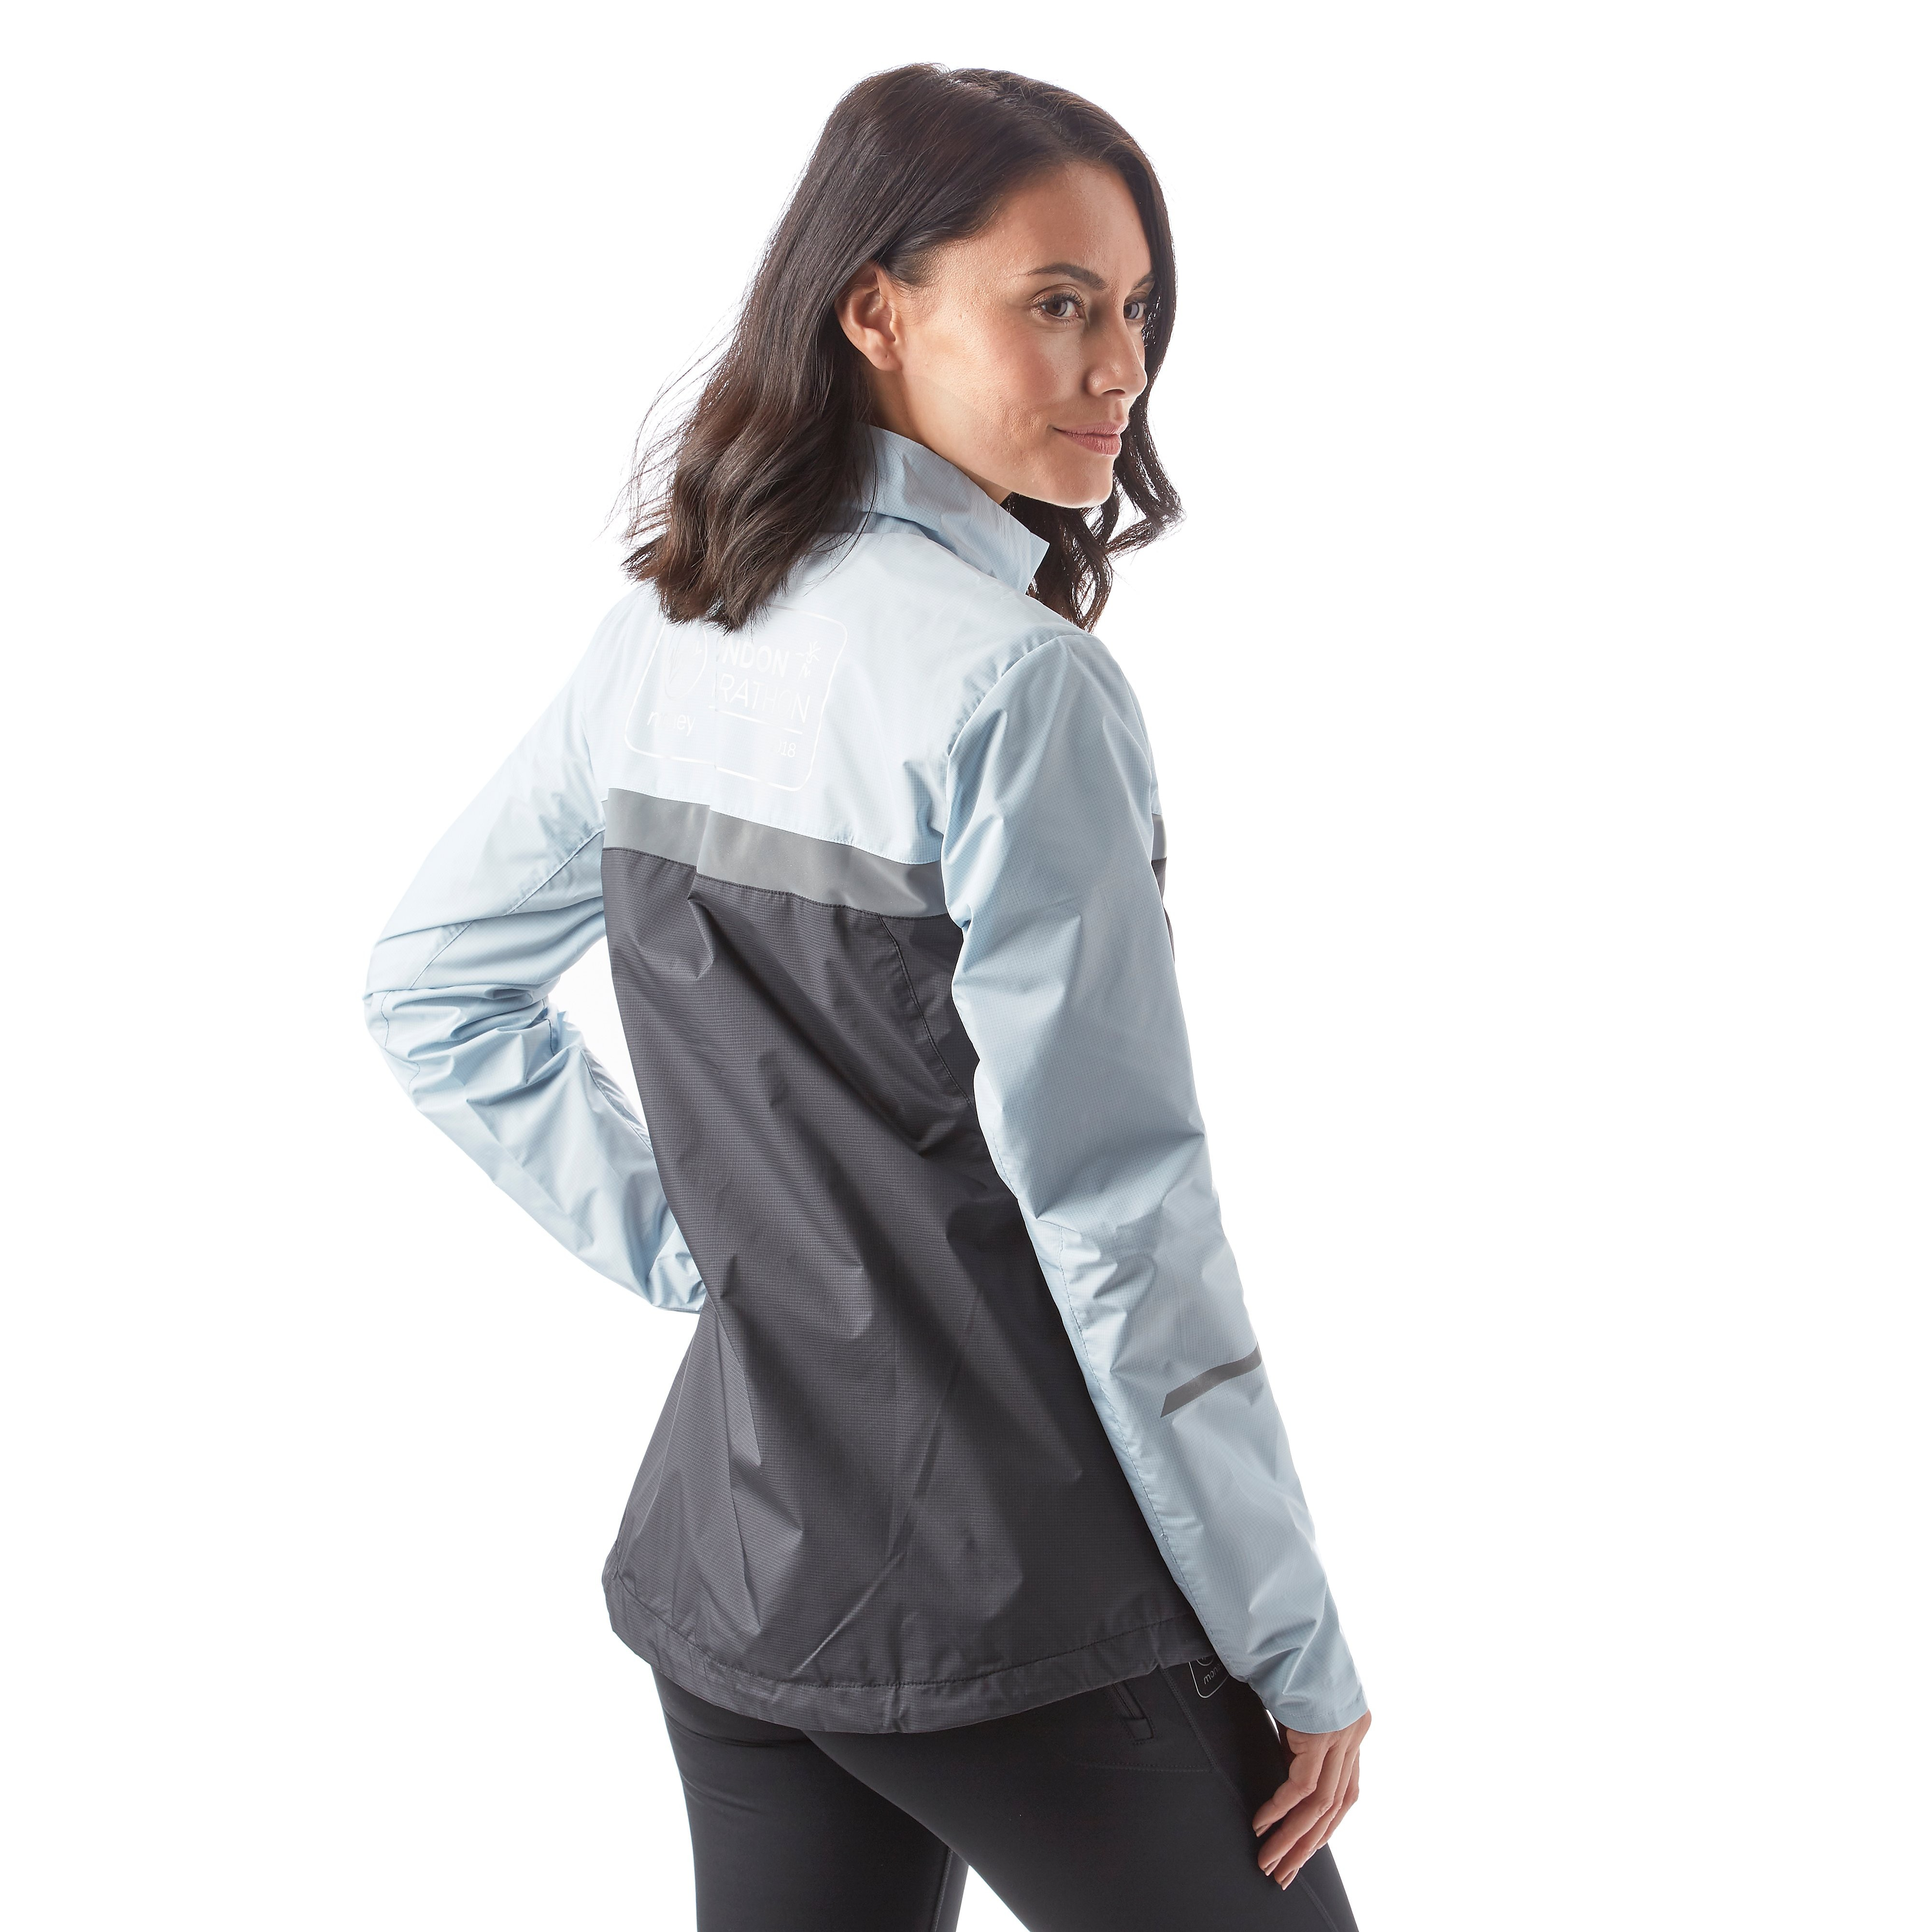 New Balance London Marathon Edition Windcheater Women's Running Jacket